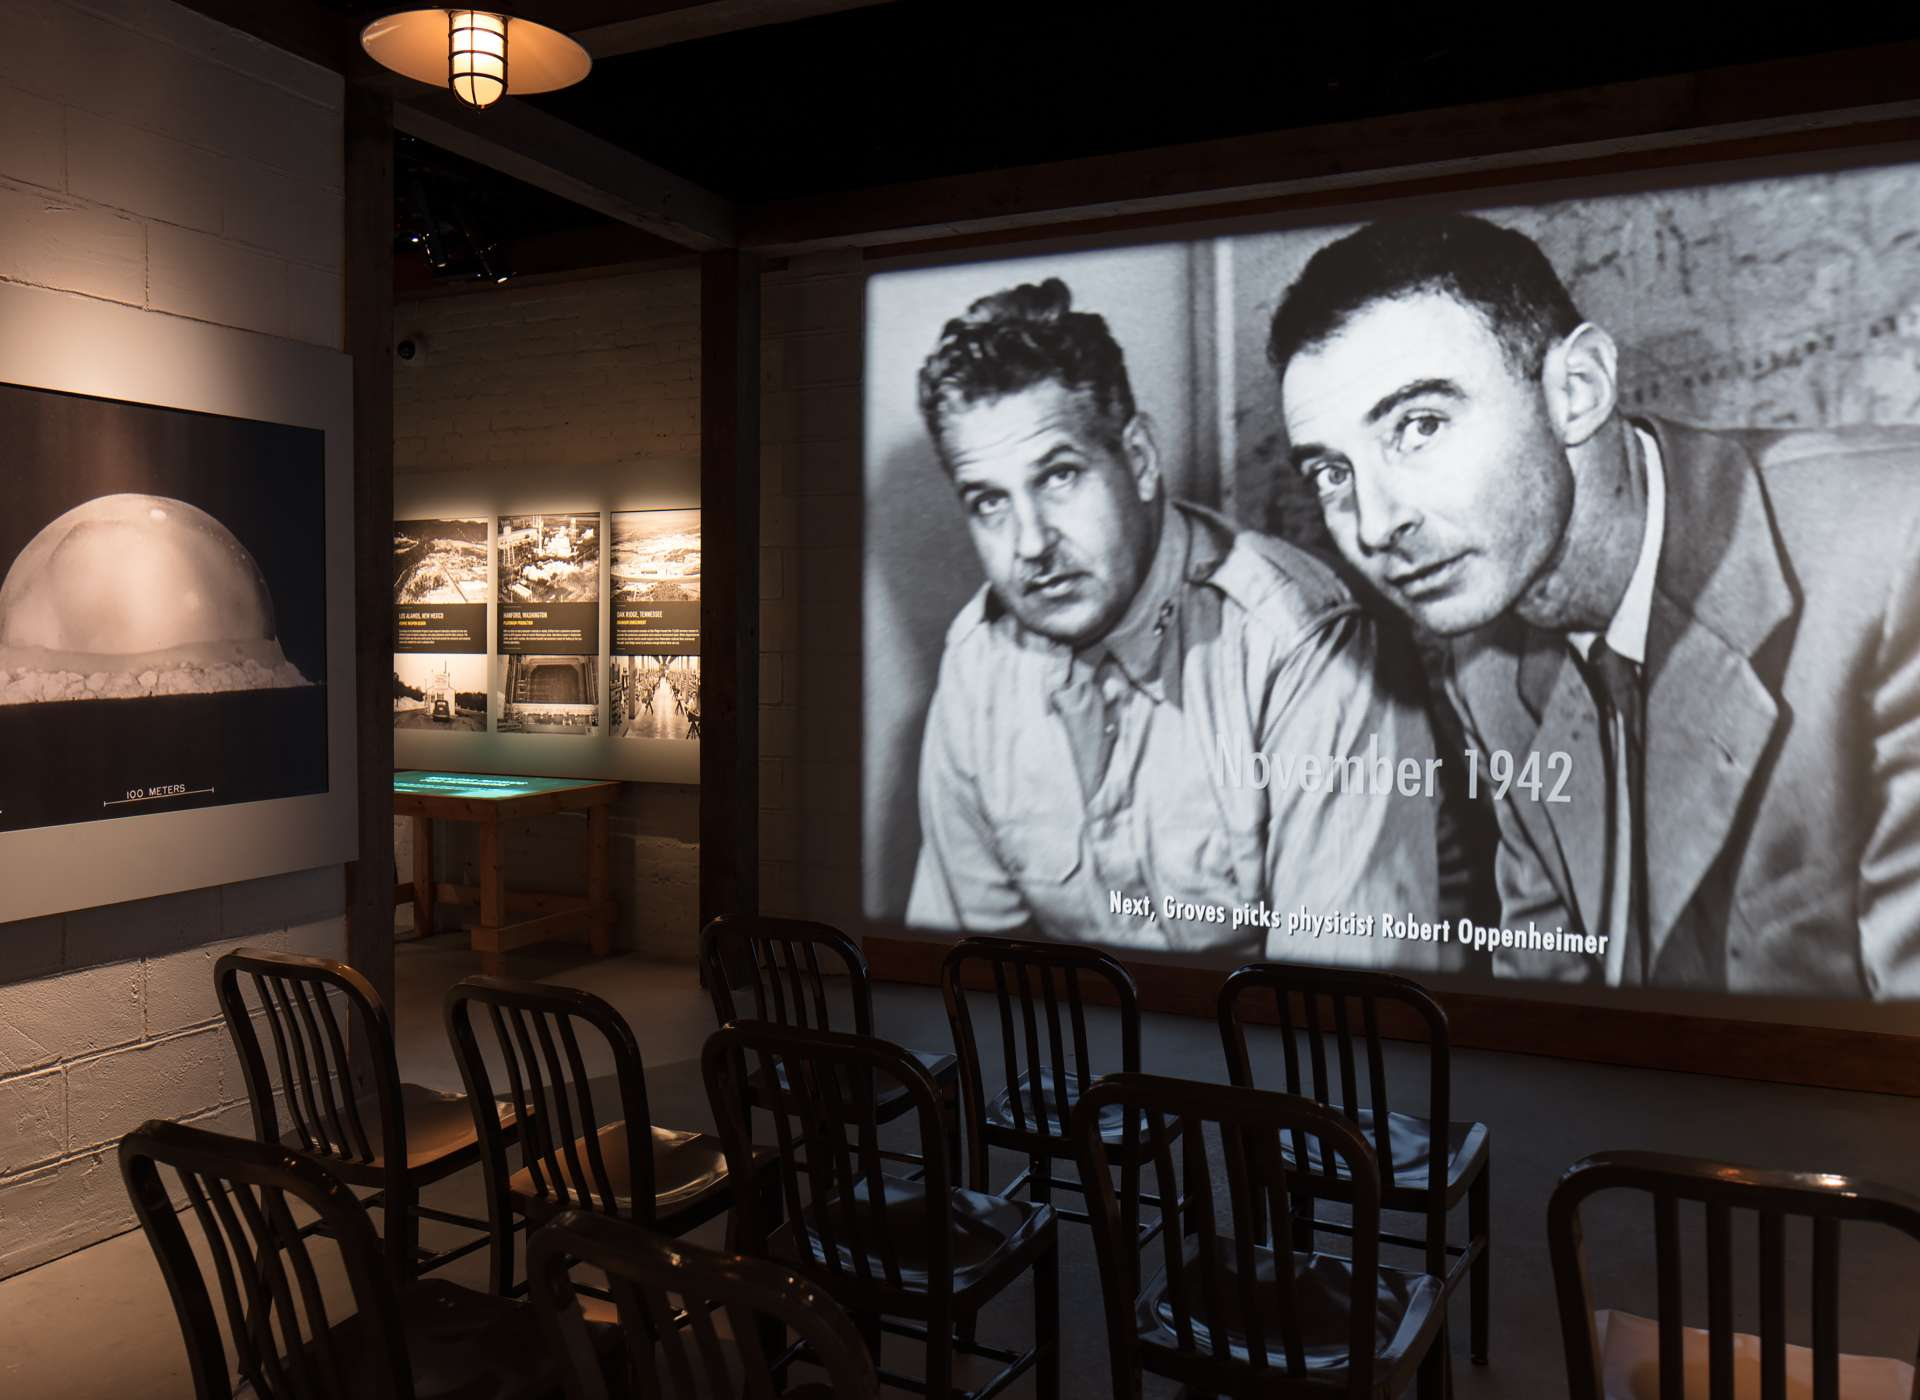 Manhattan Project gallery video, featuring physicist Robert Oppenheimer, Arsenal of Democracy